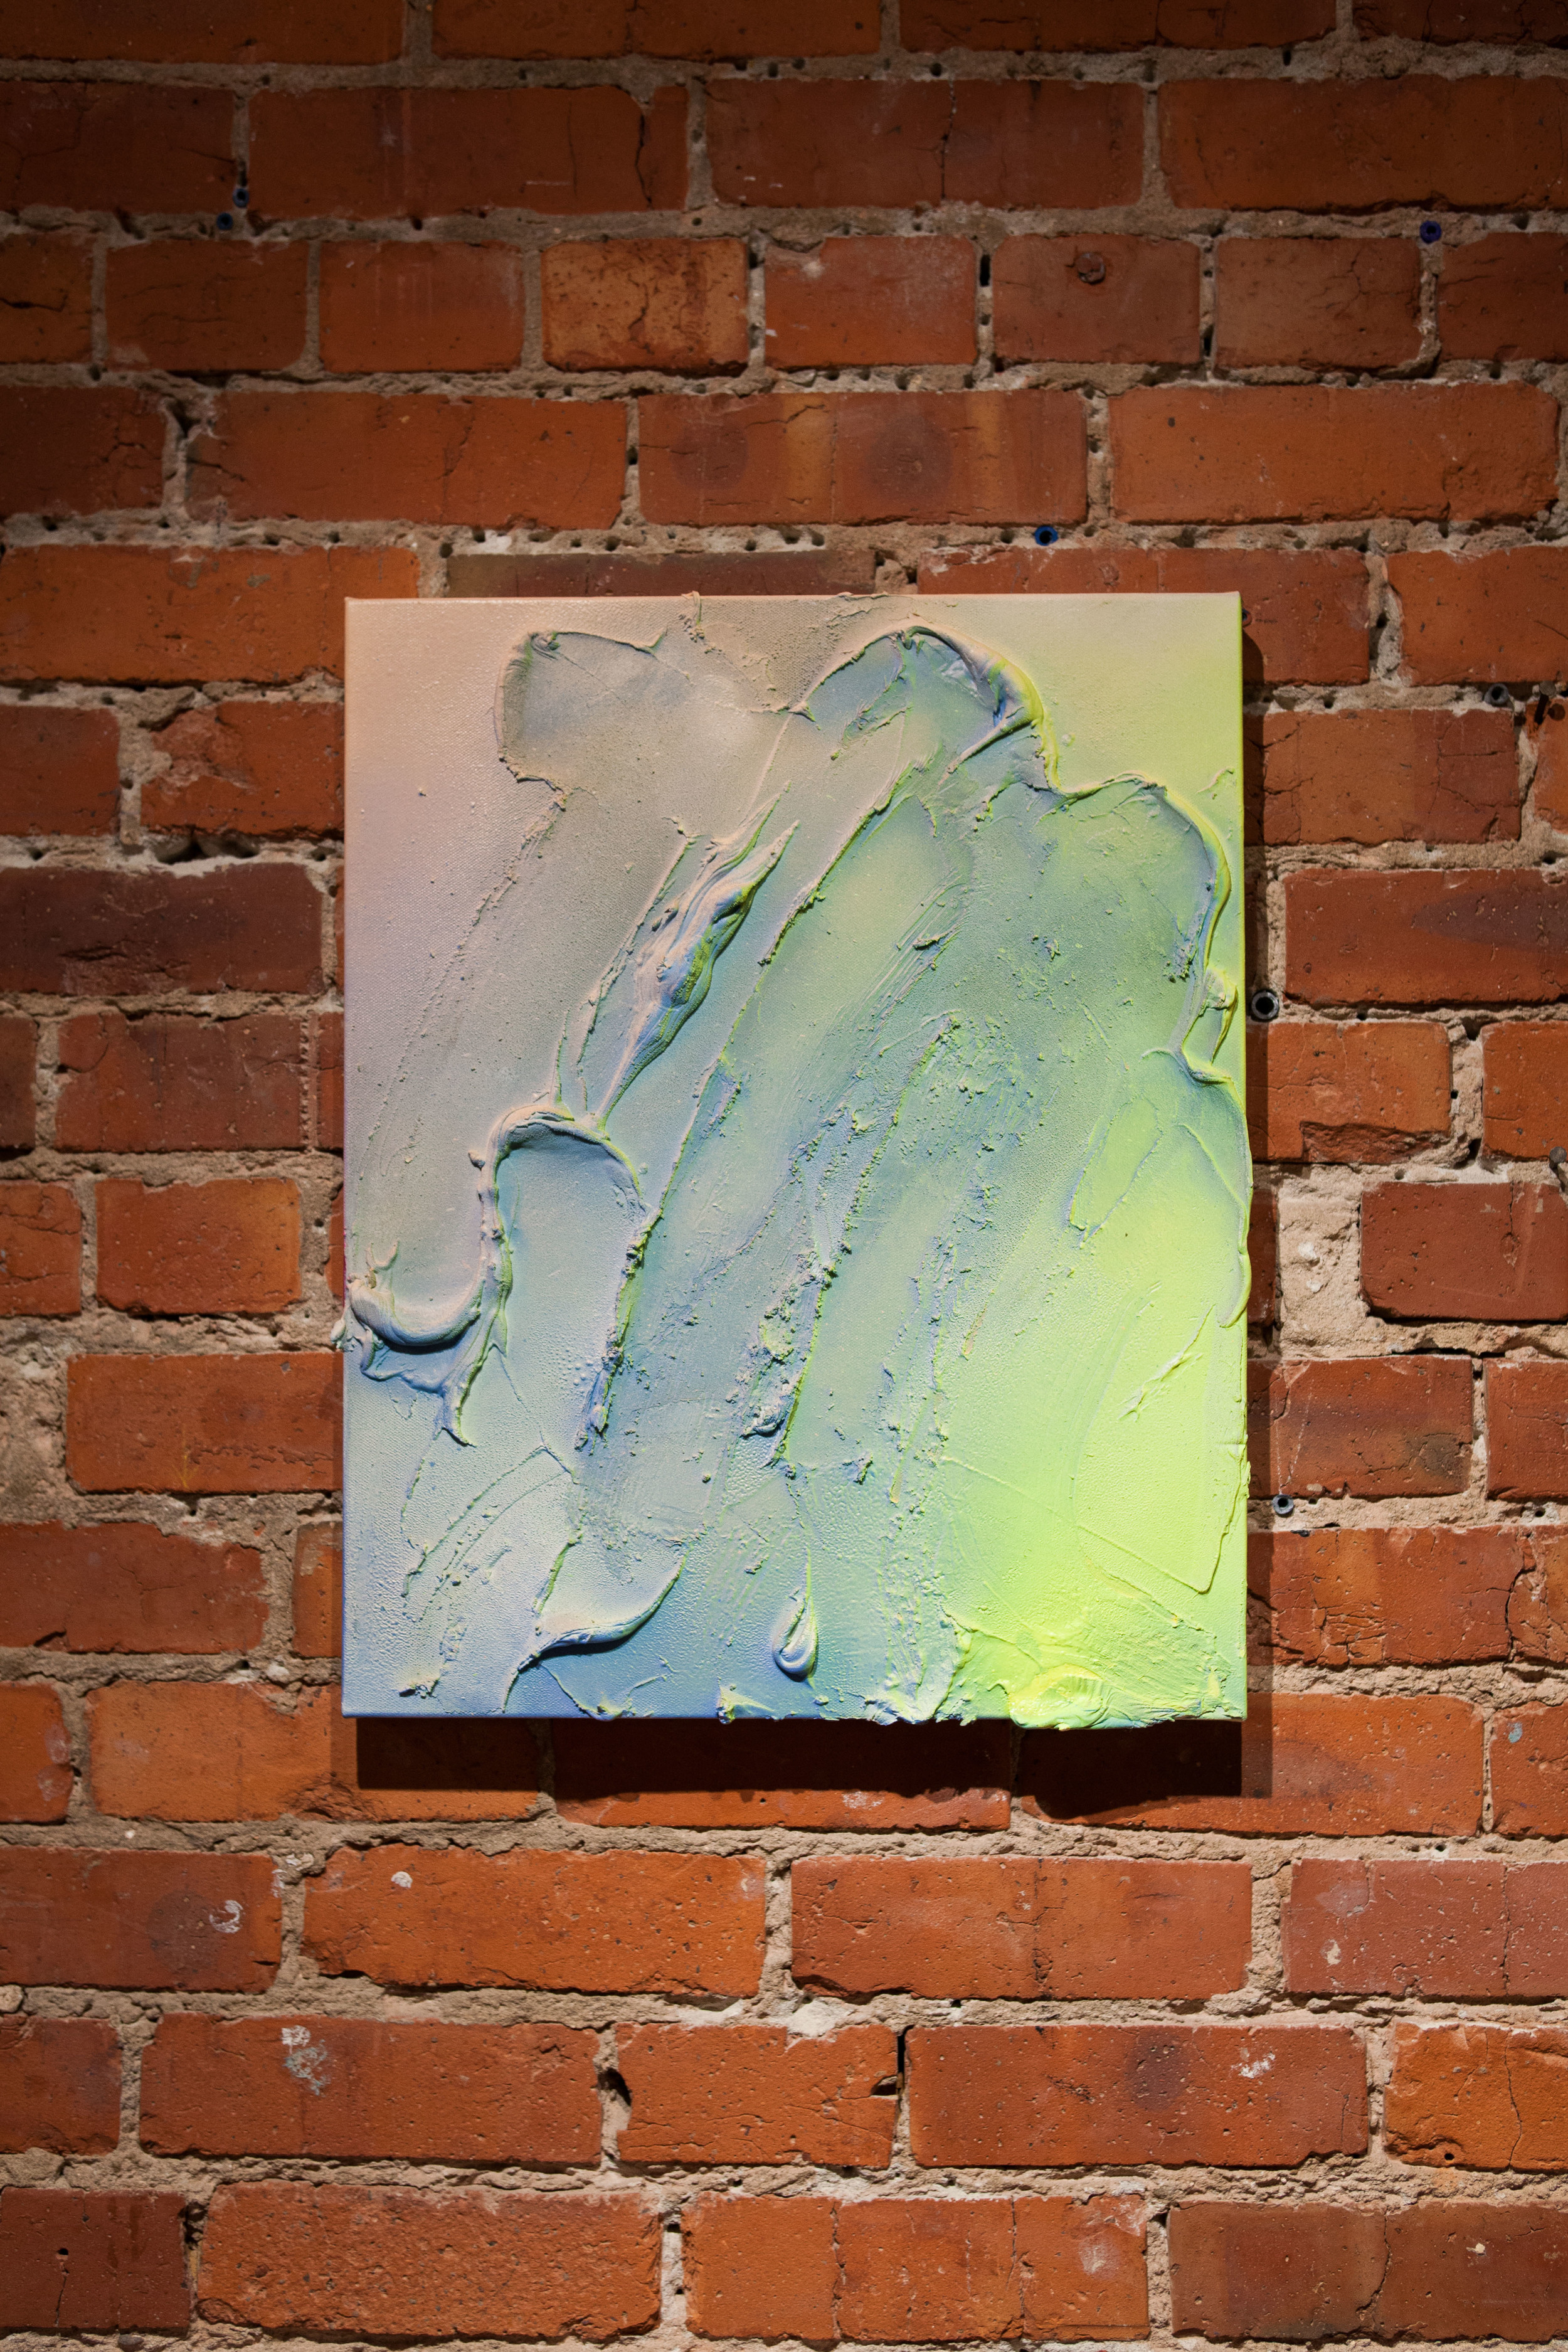 Delaney Lee,  Untitled , 2015  Aerosol and molding paste on canvas, 16 x 20 in.